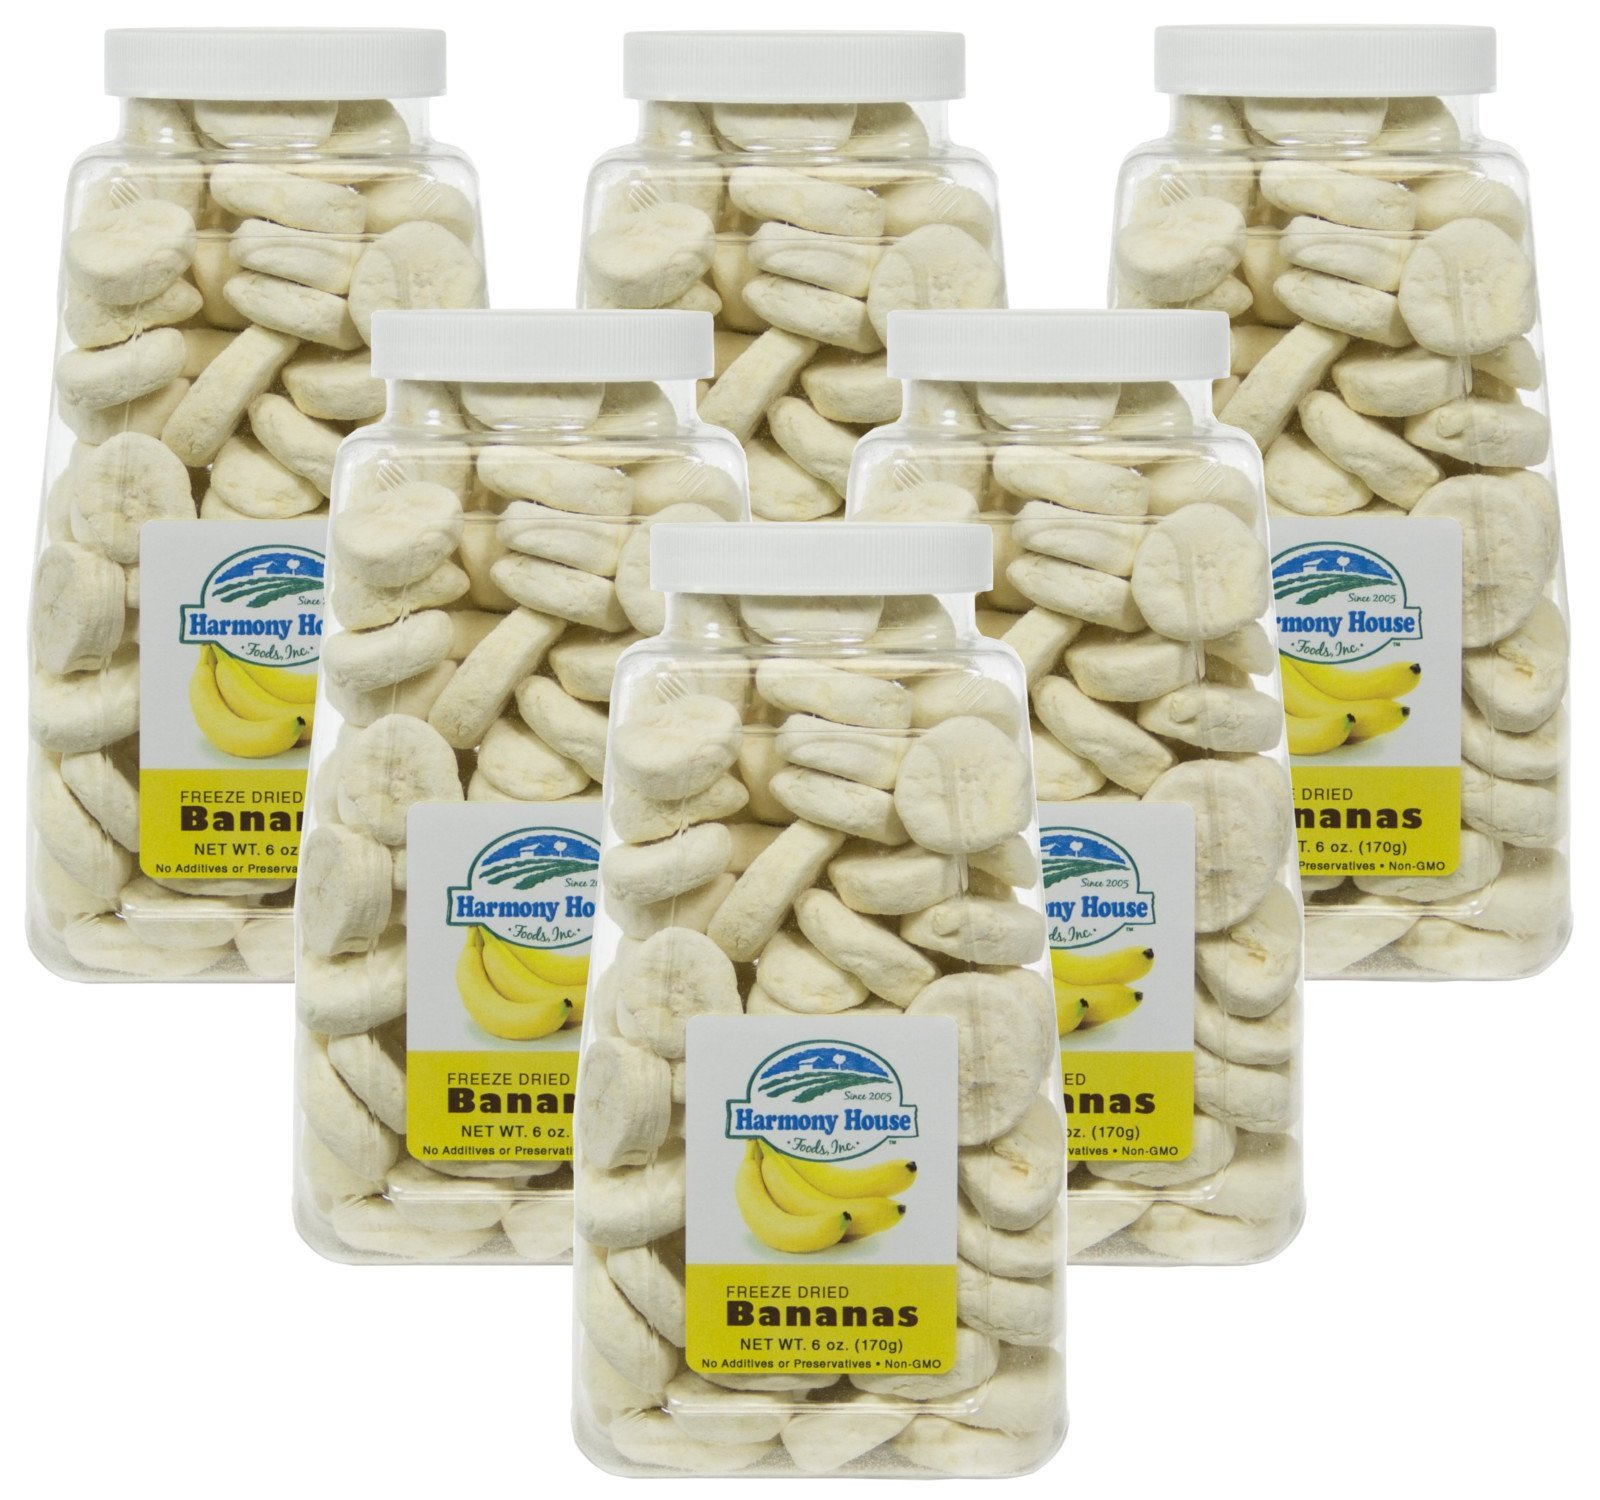 Harmony House Foods Freeze-Dried Banana, Slices (6 oz, Quart Size Jar) - Set of 6